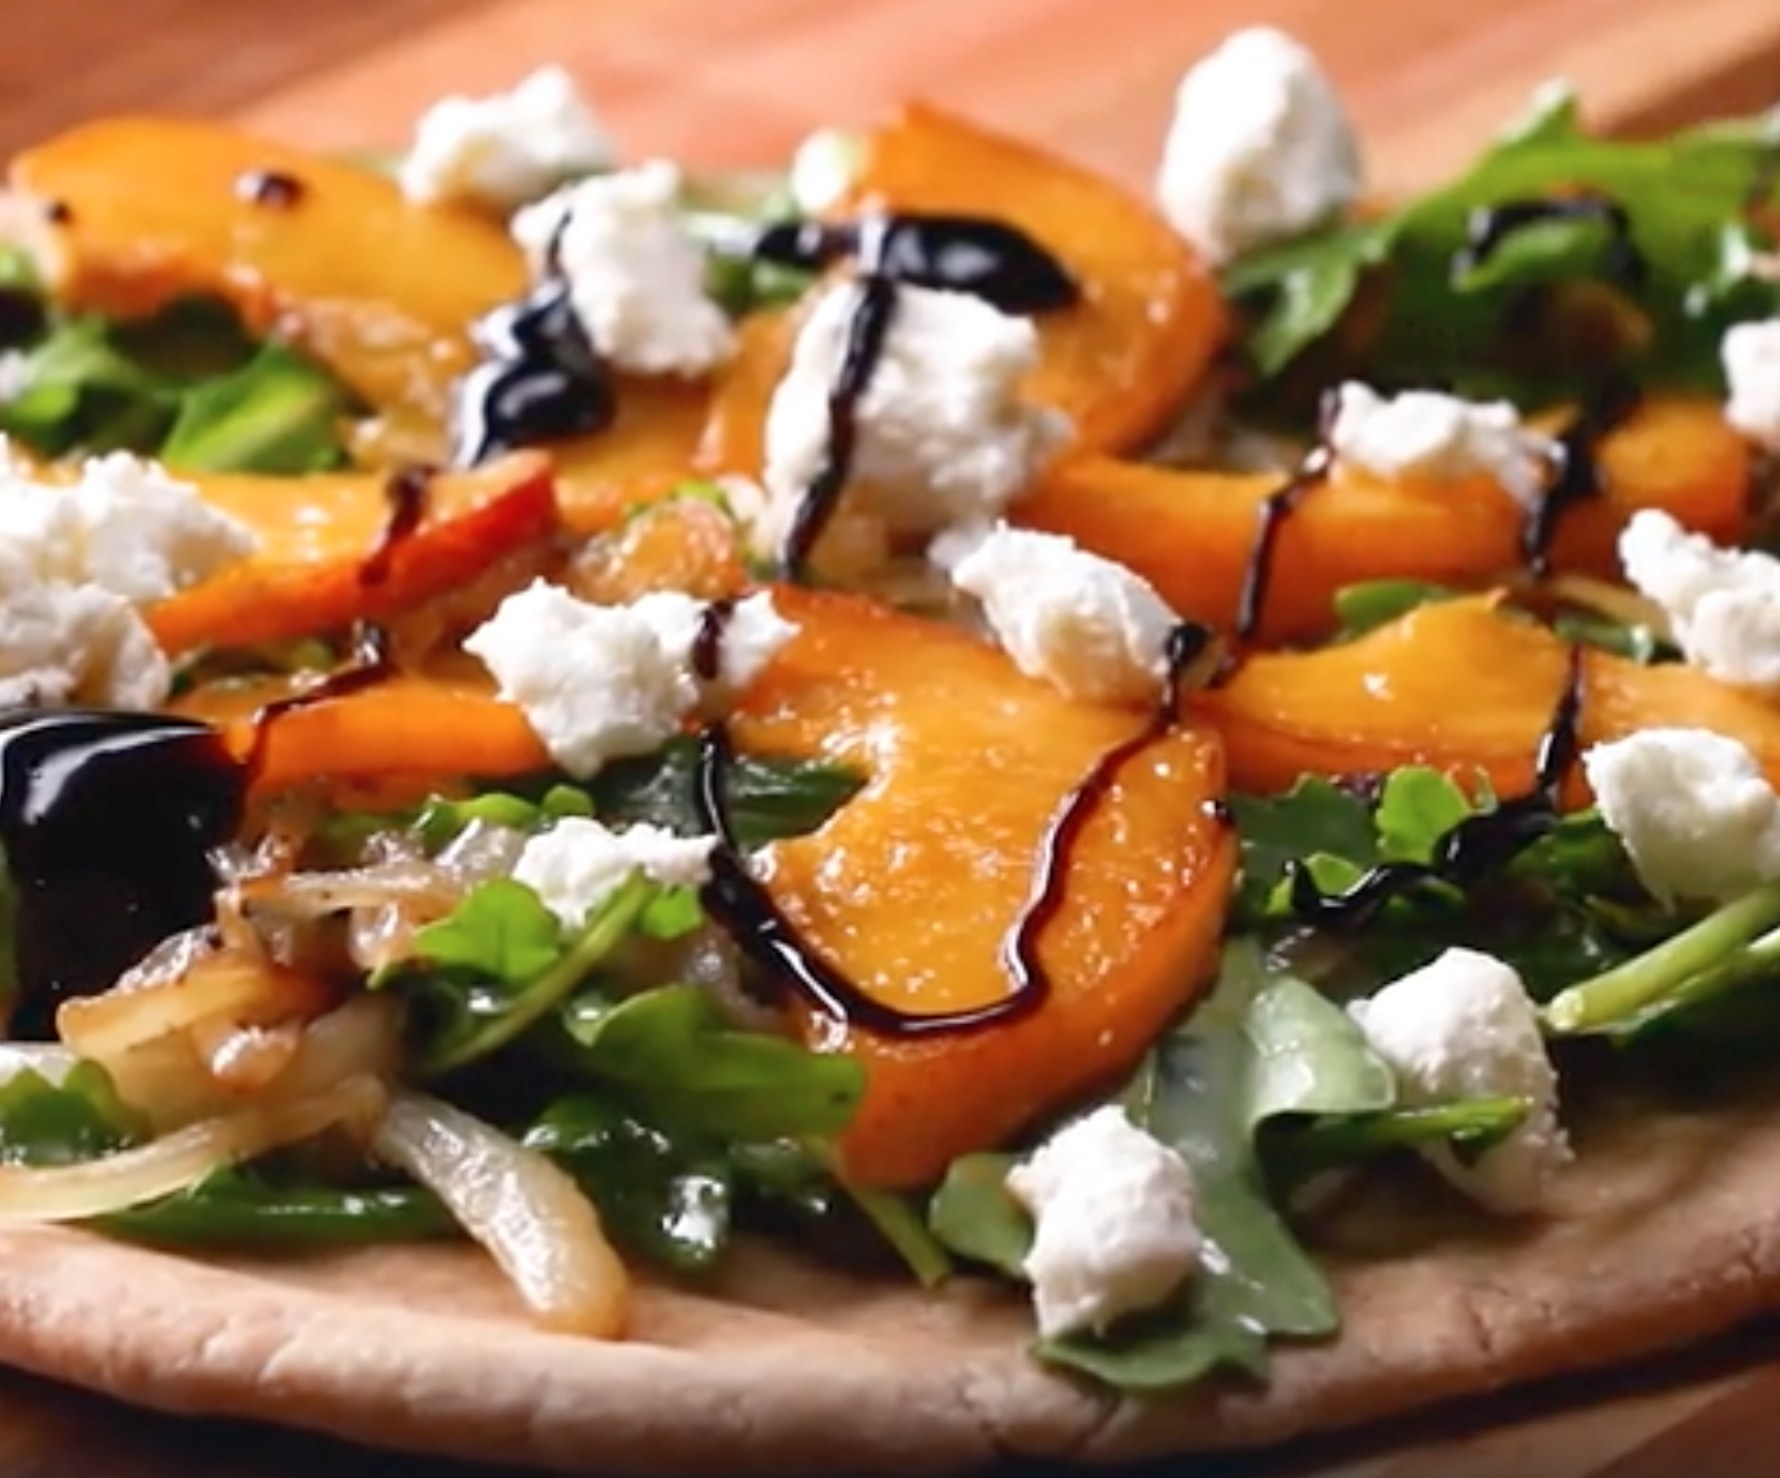 A flatbread pizza with peaches and goat cheese